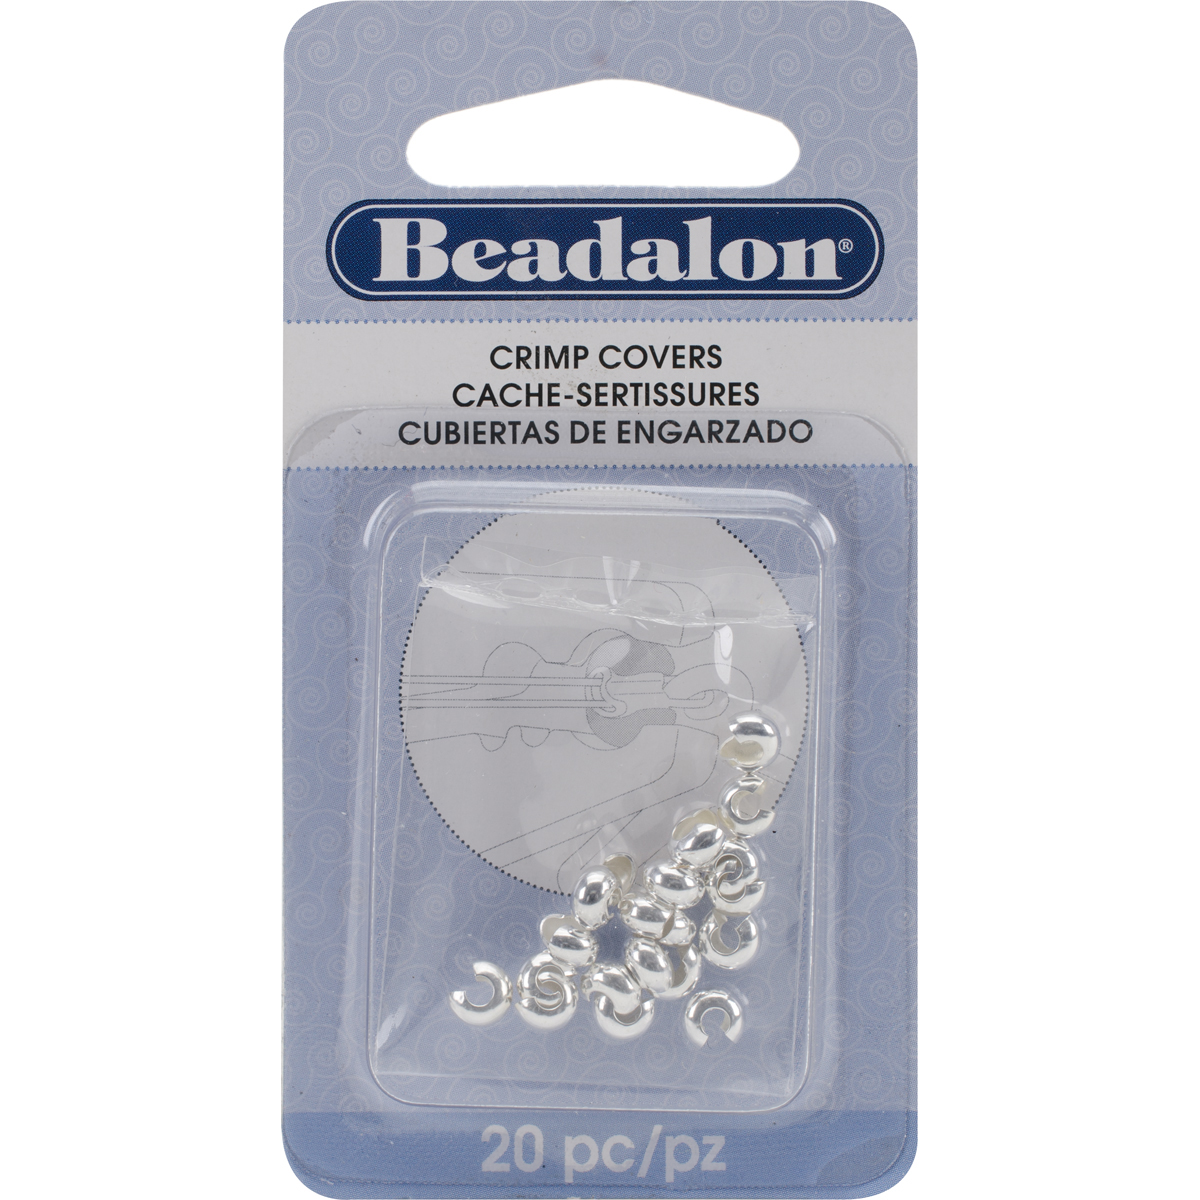 Beadalon Crimp Covers Silver 5mm